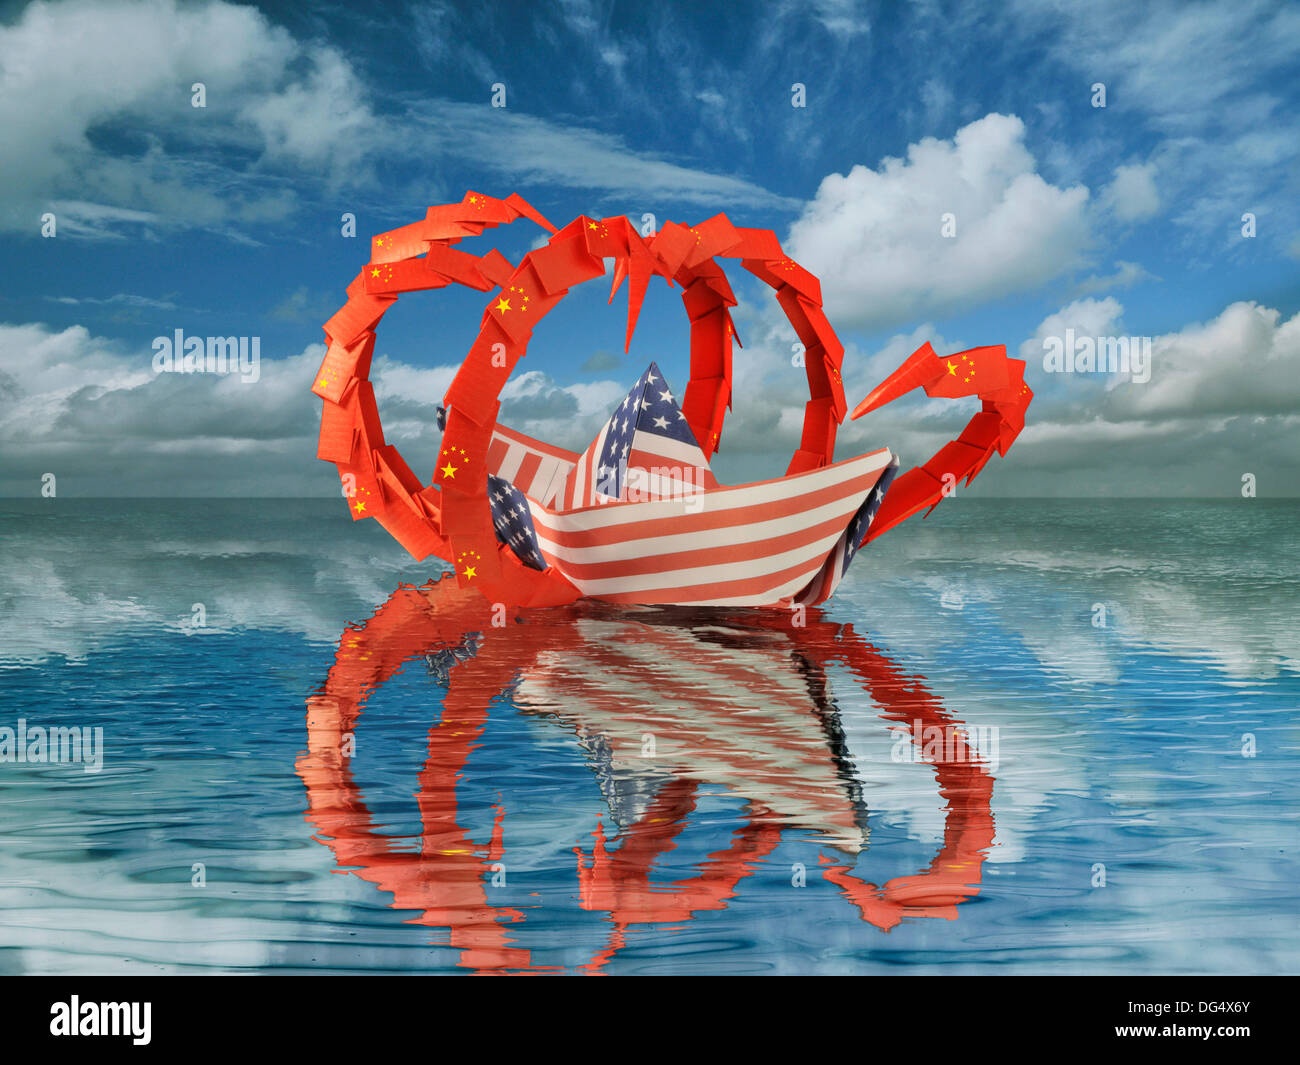 A paper boat made of the flag of the USA is attacked by a sea monster with the pattern of the Chinese flag. - Stock Image